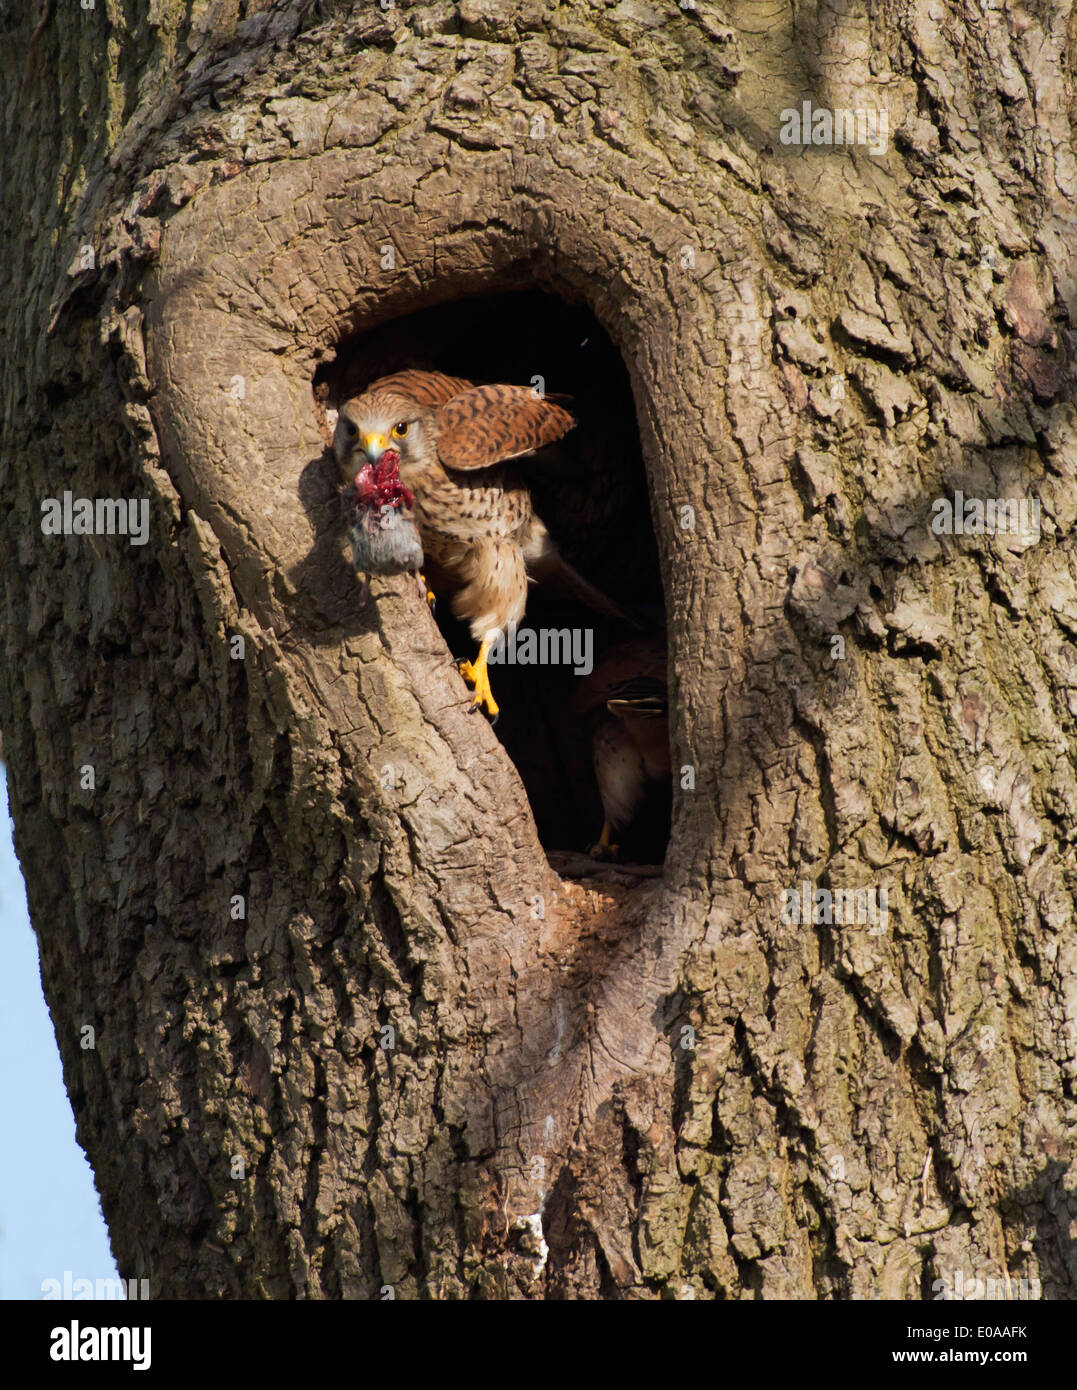 Wild female Kestrel, Falco tinnunculus perched at entrance to nest with vole - Stock Image